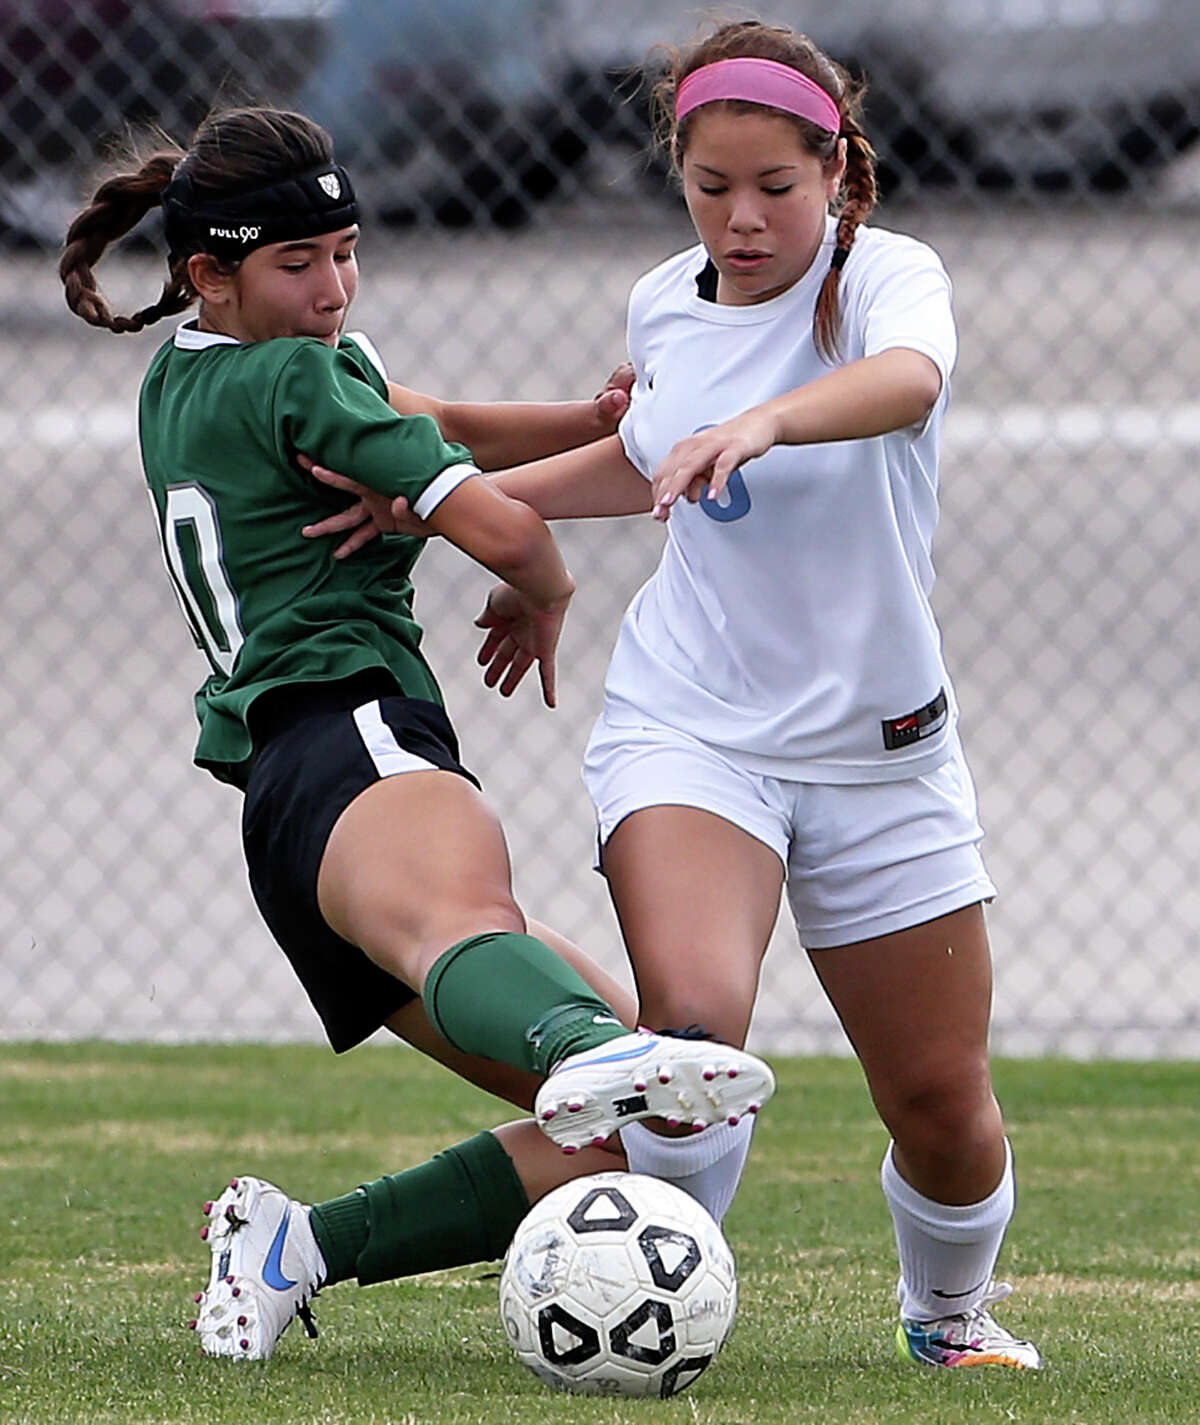 Reagan's Lina Fernandez stretches in for a tackle on Erika Palacios as Johnson plays Reagan in a 26-5A girls soccer match at Northeast Soccer Stadium on March 14, 2014.